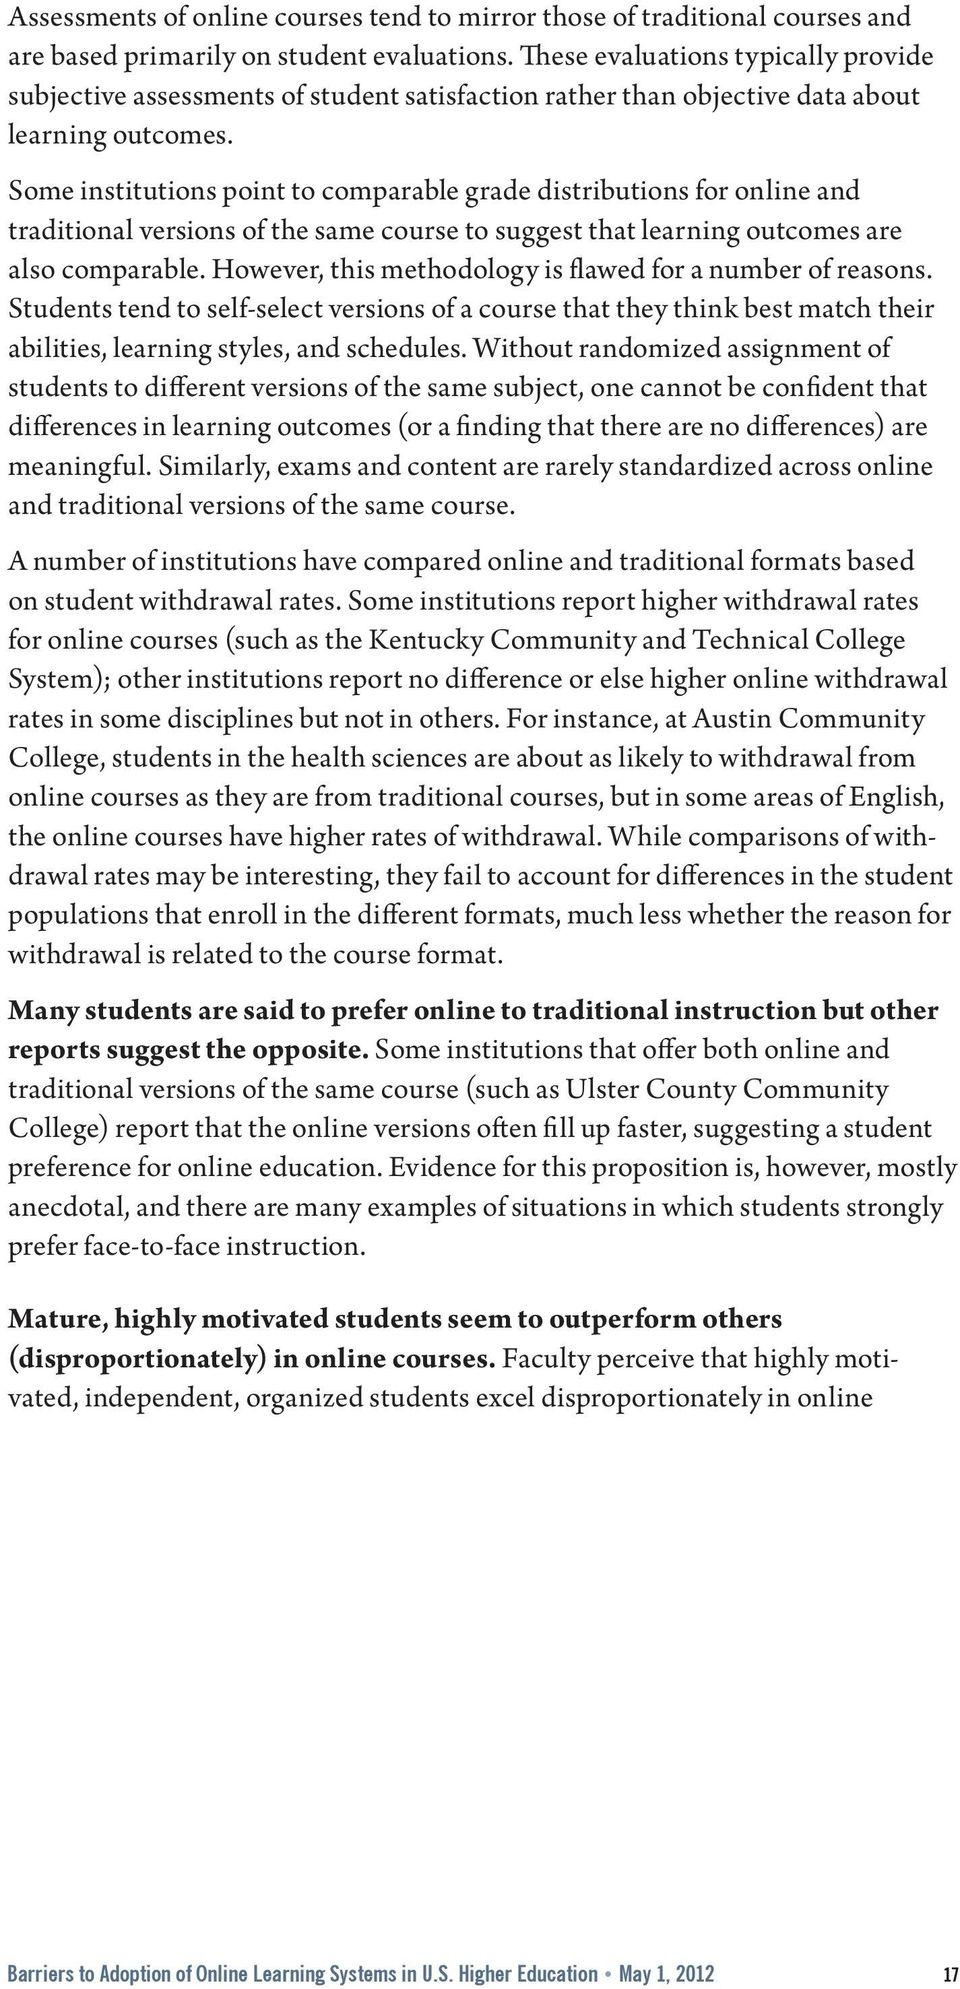 Some institutions point to comparable grade distributions for online and traditional versions of the same course to suggest that learning outcomes are also comparable.